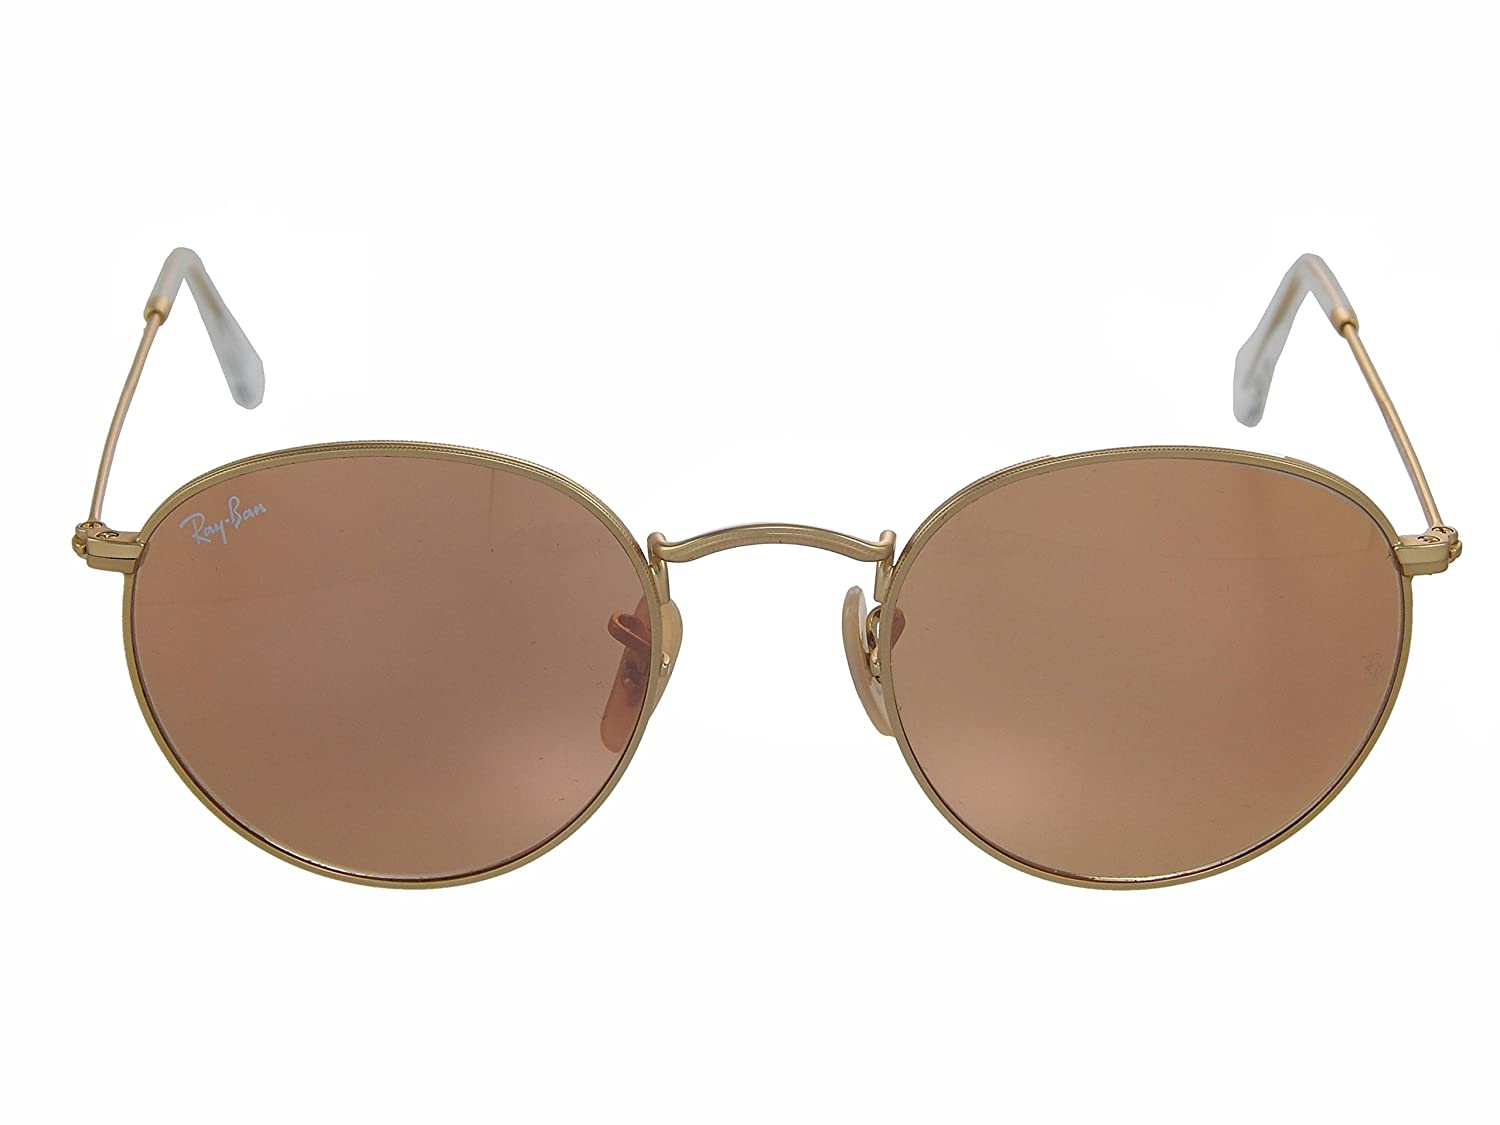 e6726ce59b Amazon.com  New Ray Ban RB3447 112 Z2 Matte Gold Brown Pink Mirror 50mm  Sunglasses  Shoes